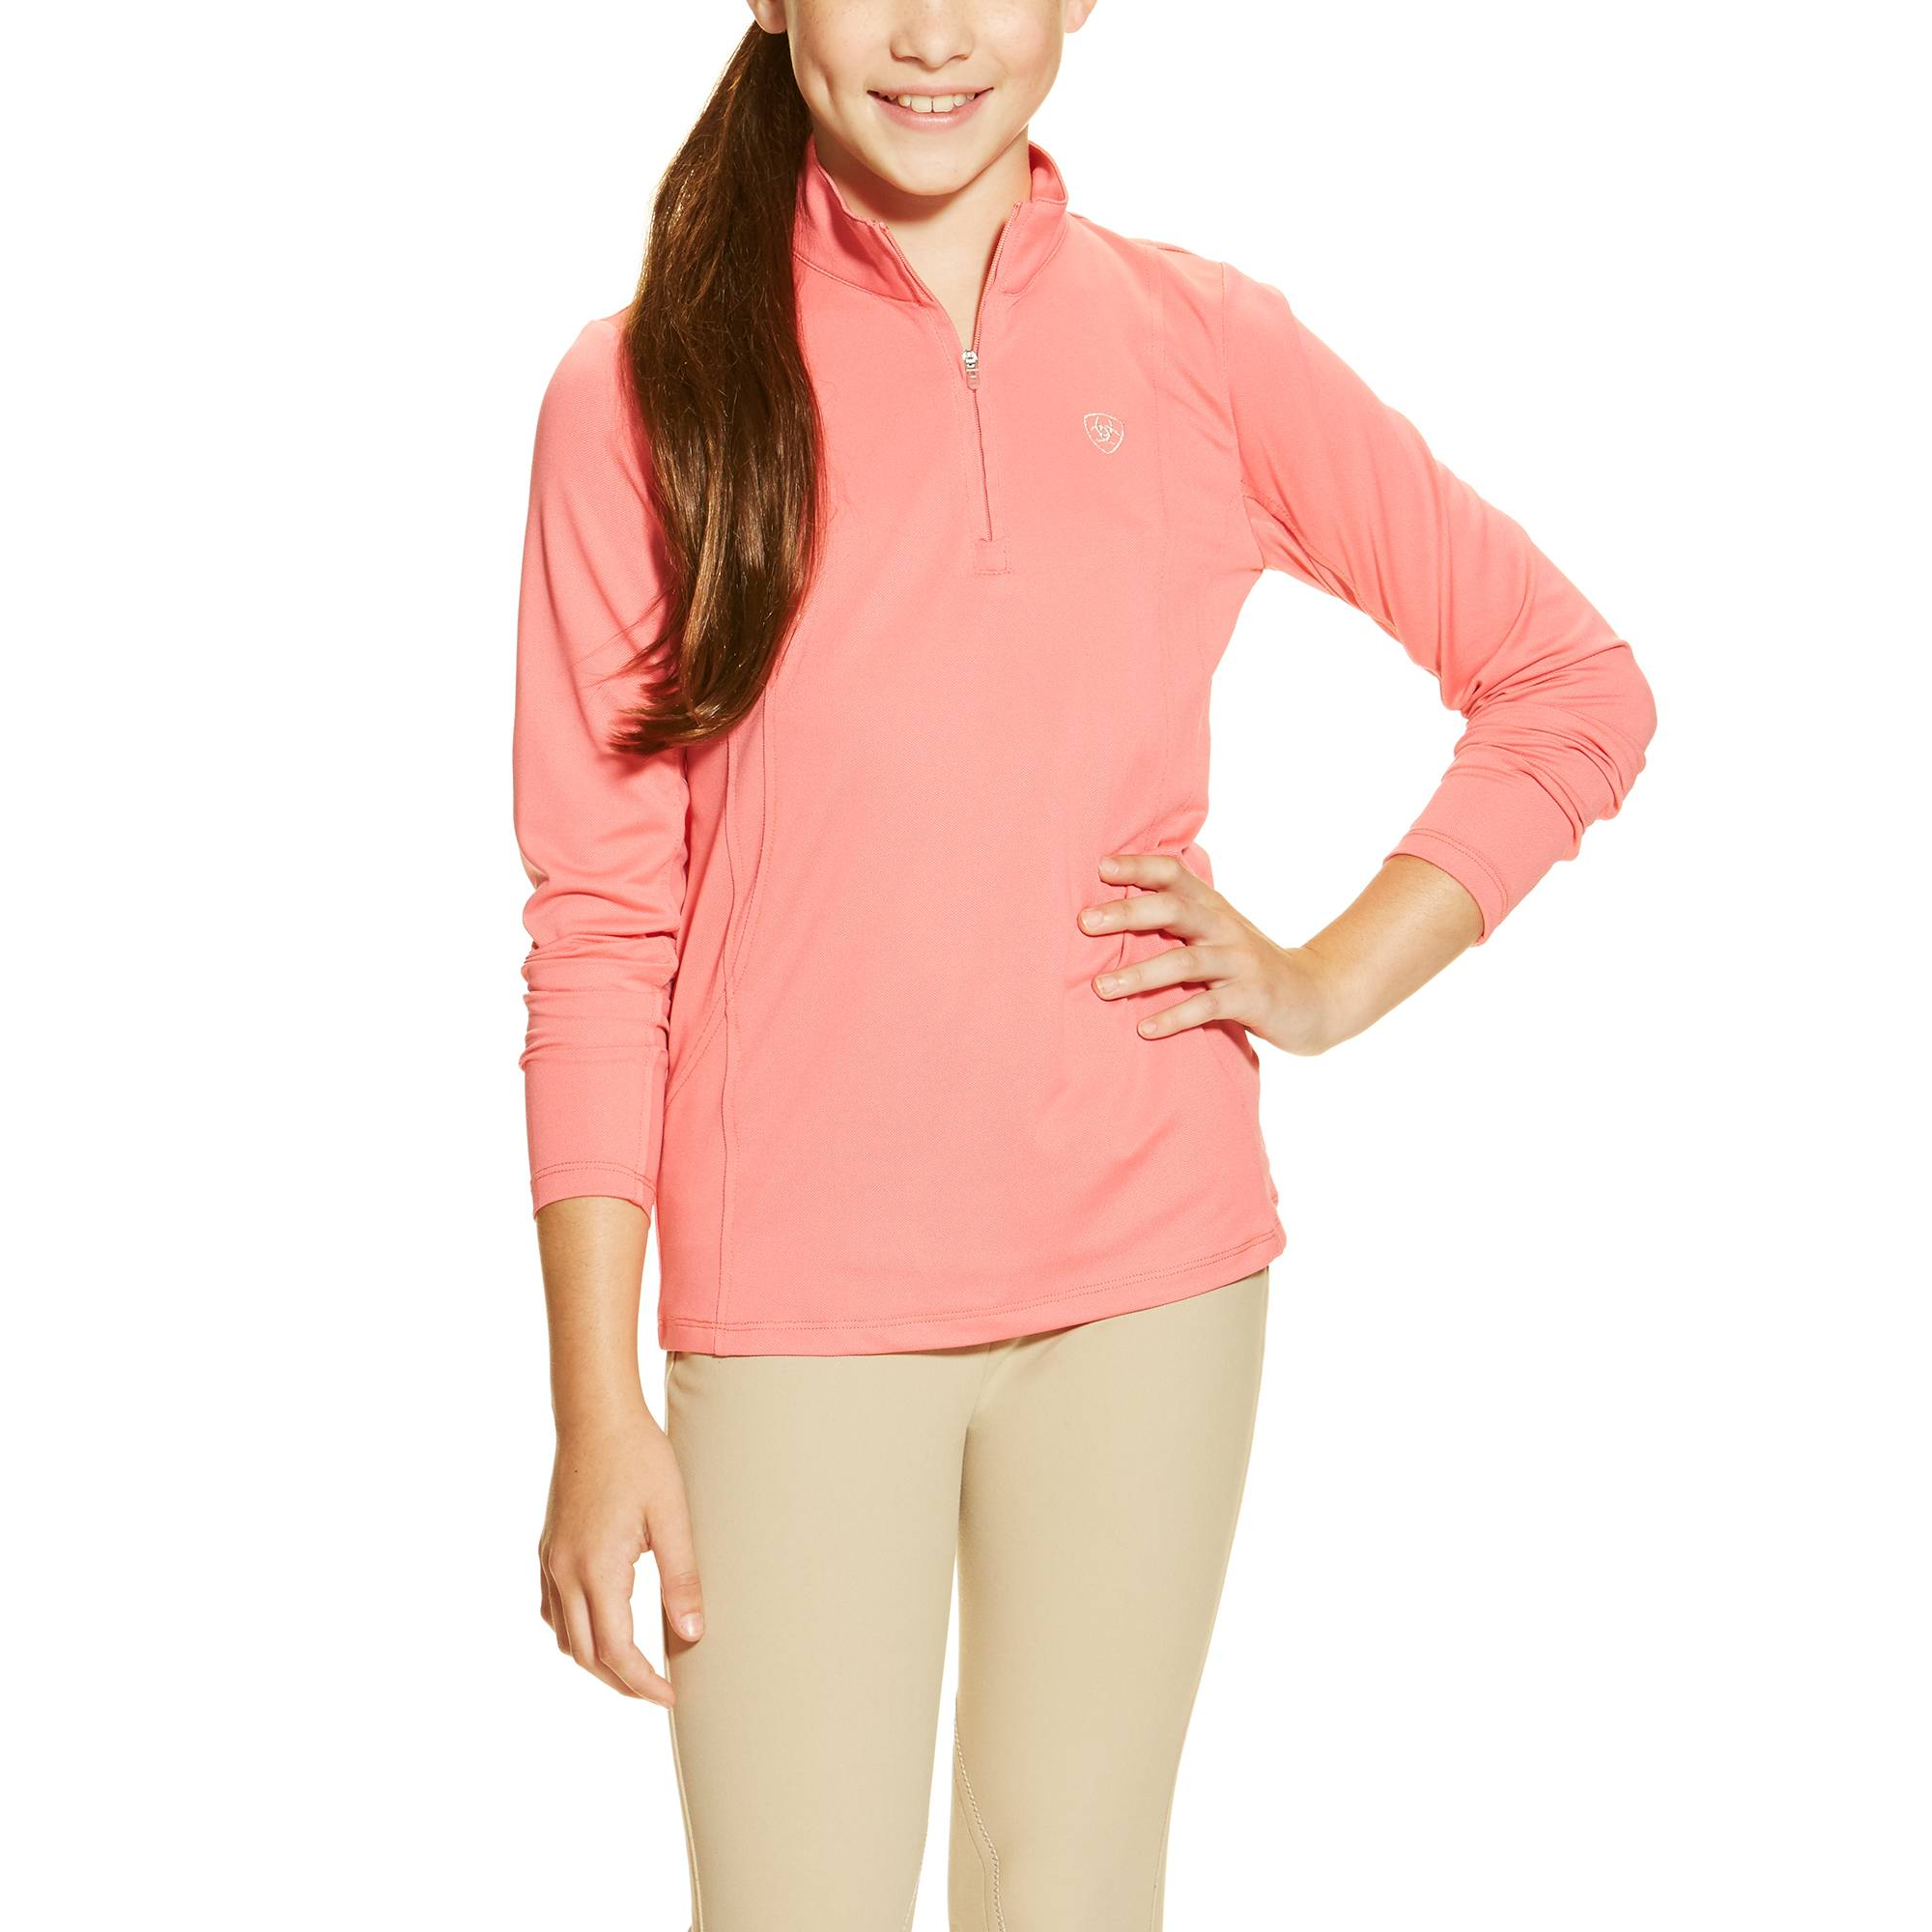 Ariat Girl's Sunstopper Top - Strawberry Pink